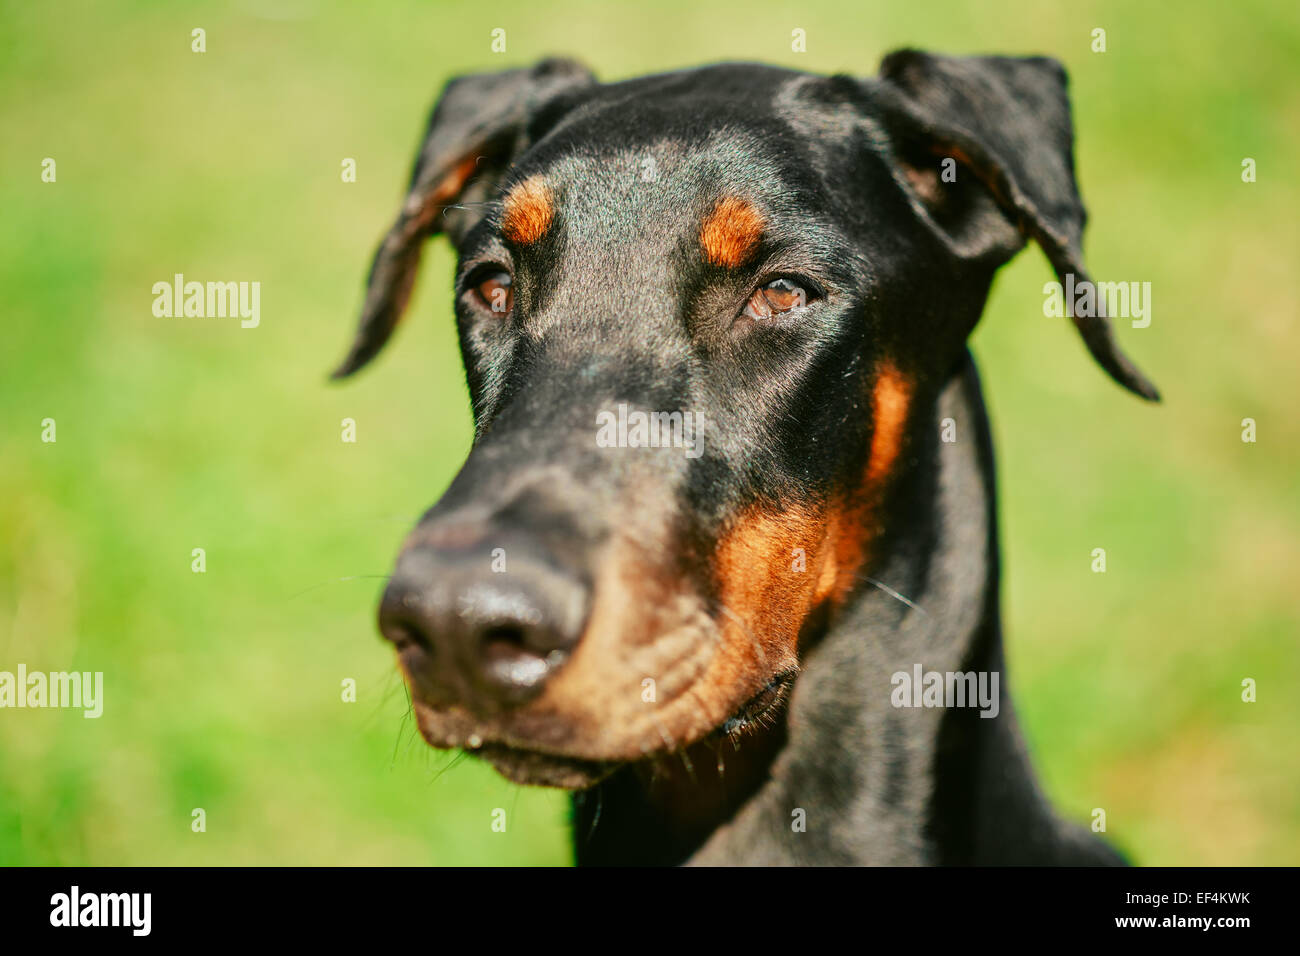 Close Up Young, Beautiful, Black And Tan Doberman Is A Breed Known For Being Intelligent, Alert, And Loyal Companion - Stock Image